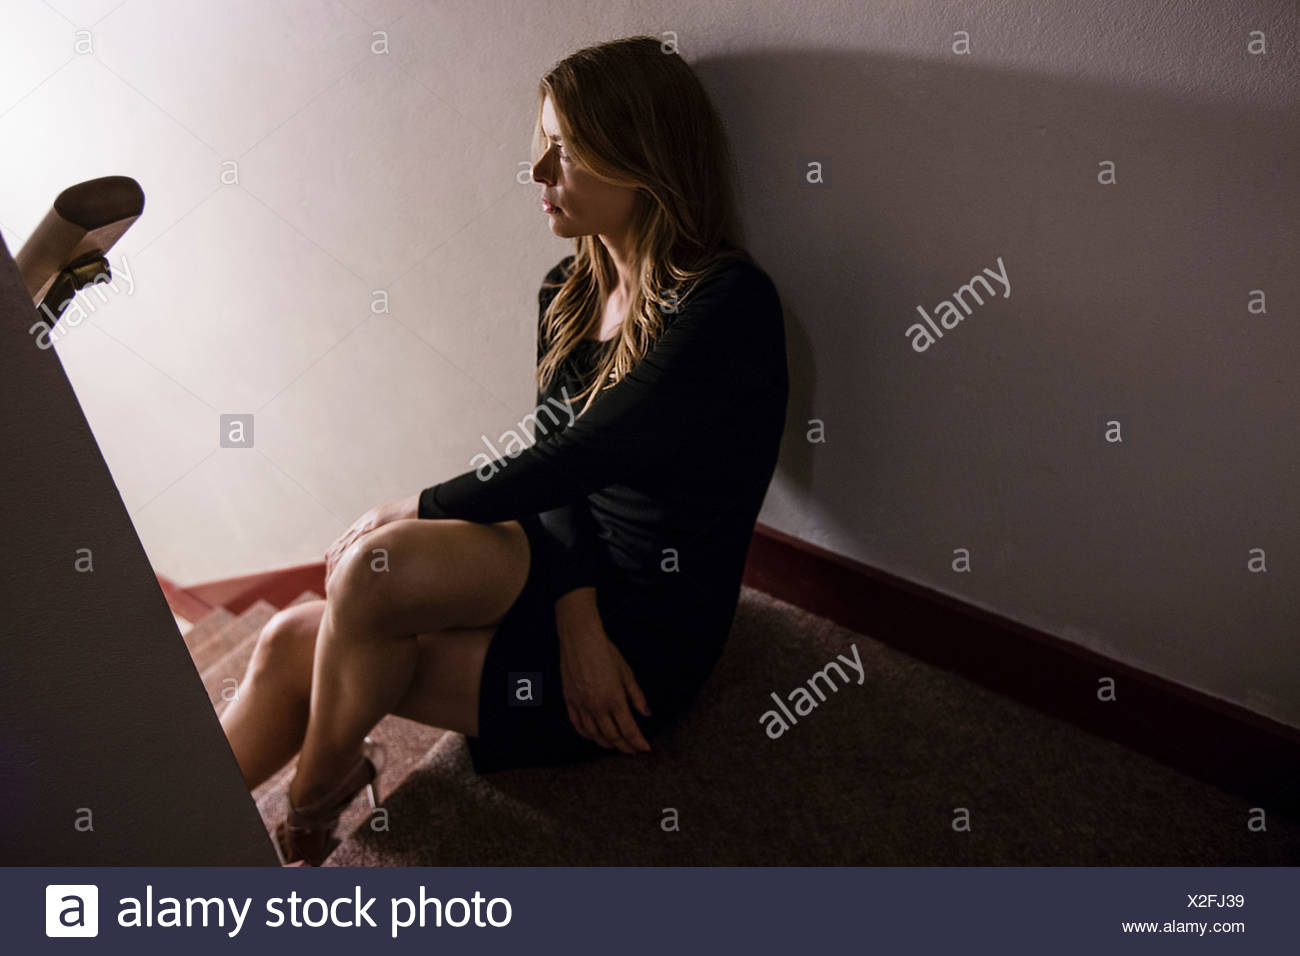 Mature woman sitting on staircase, looking away - Stock Image